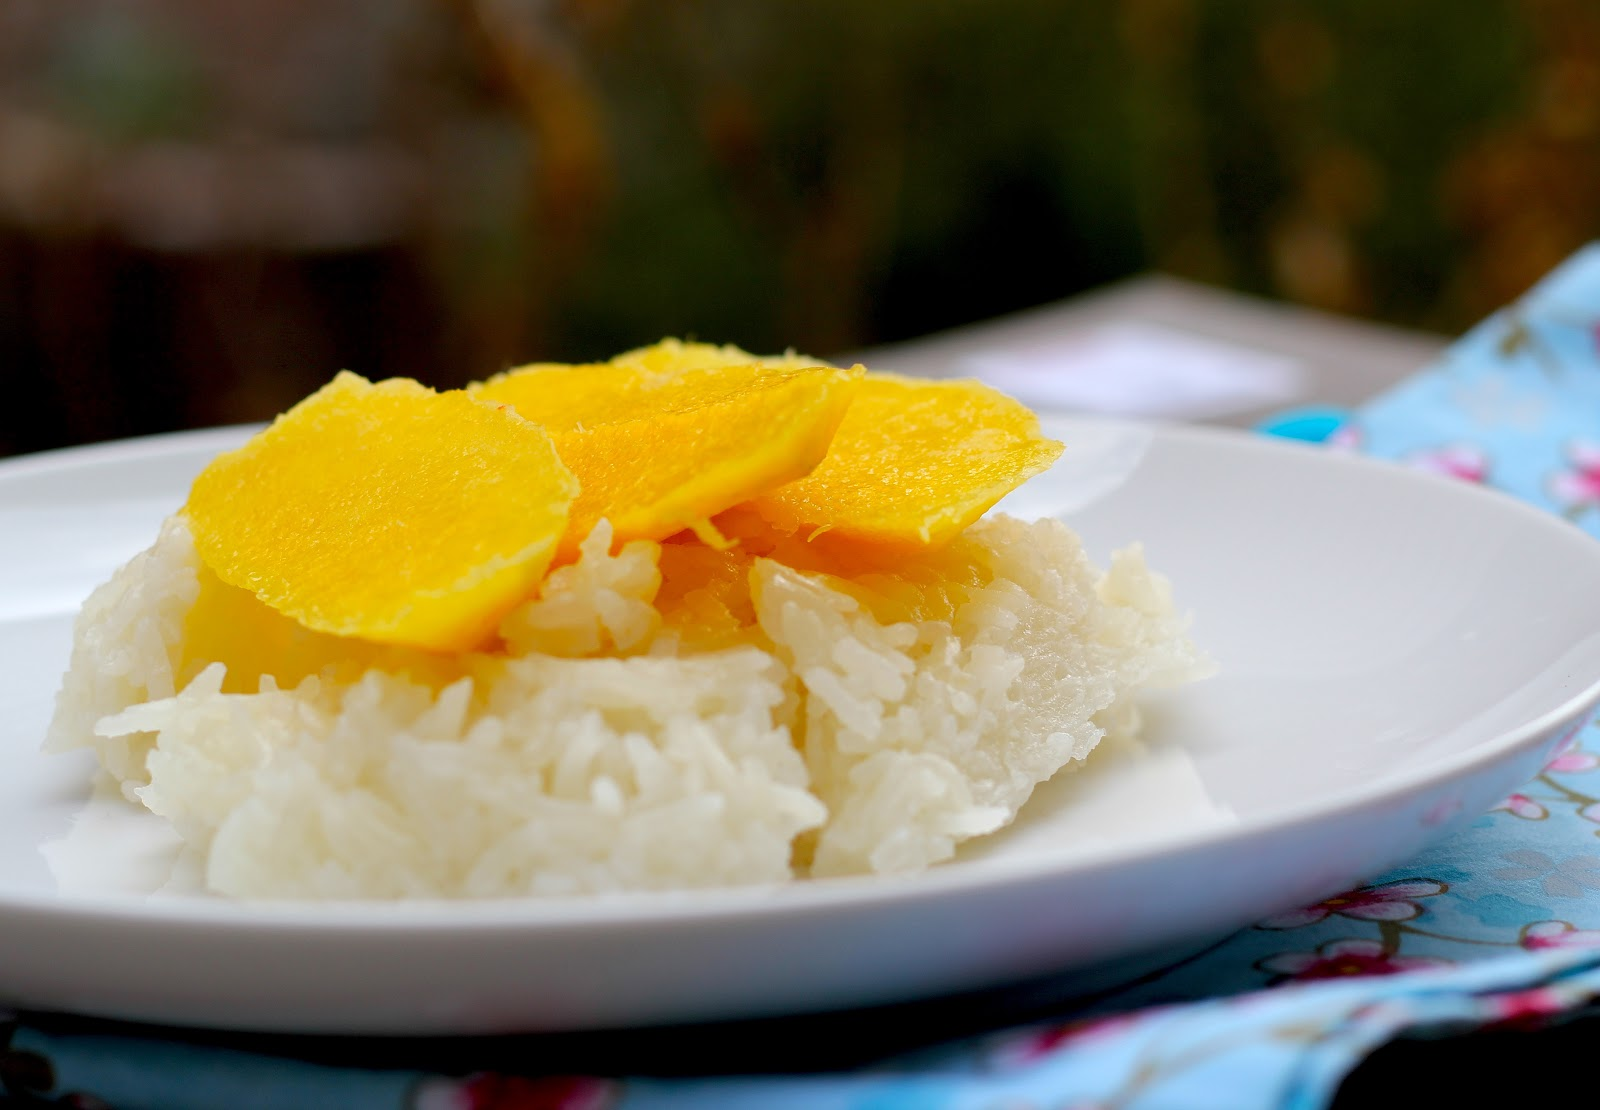 Sticky Rice And Mango ���้าวเหนียวมะม่วง For Most Asian Families, It Is Mon  To Have